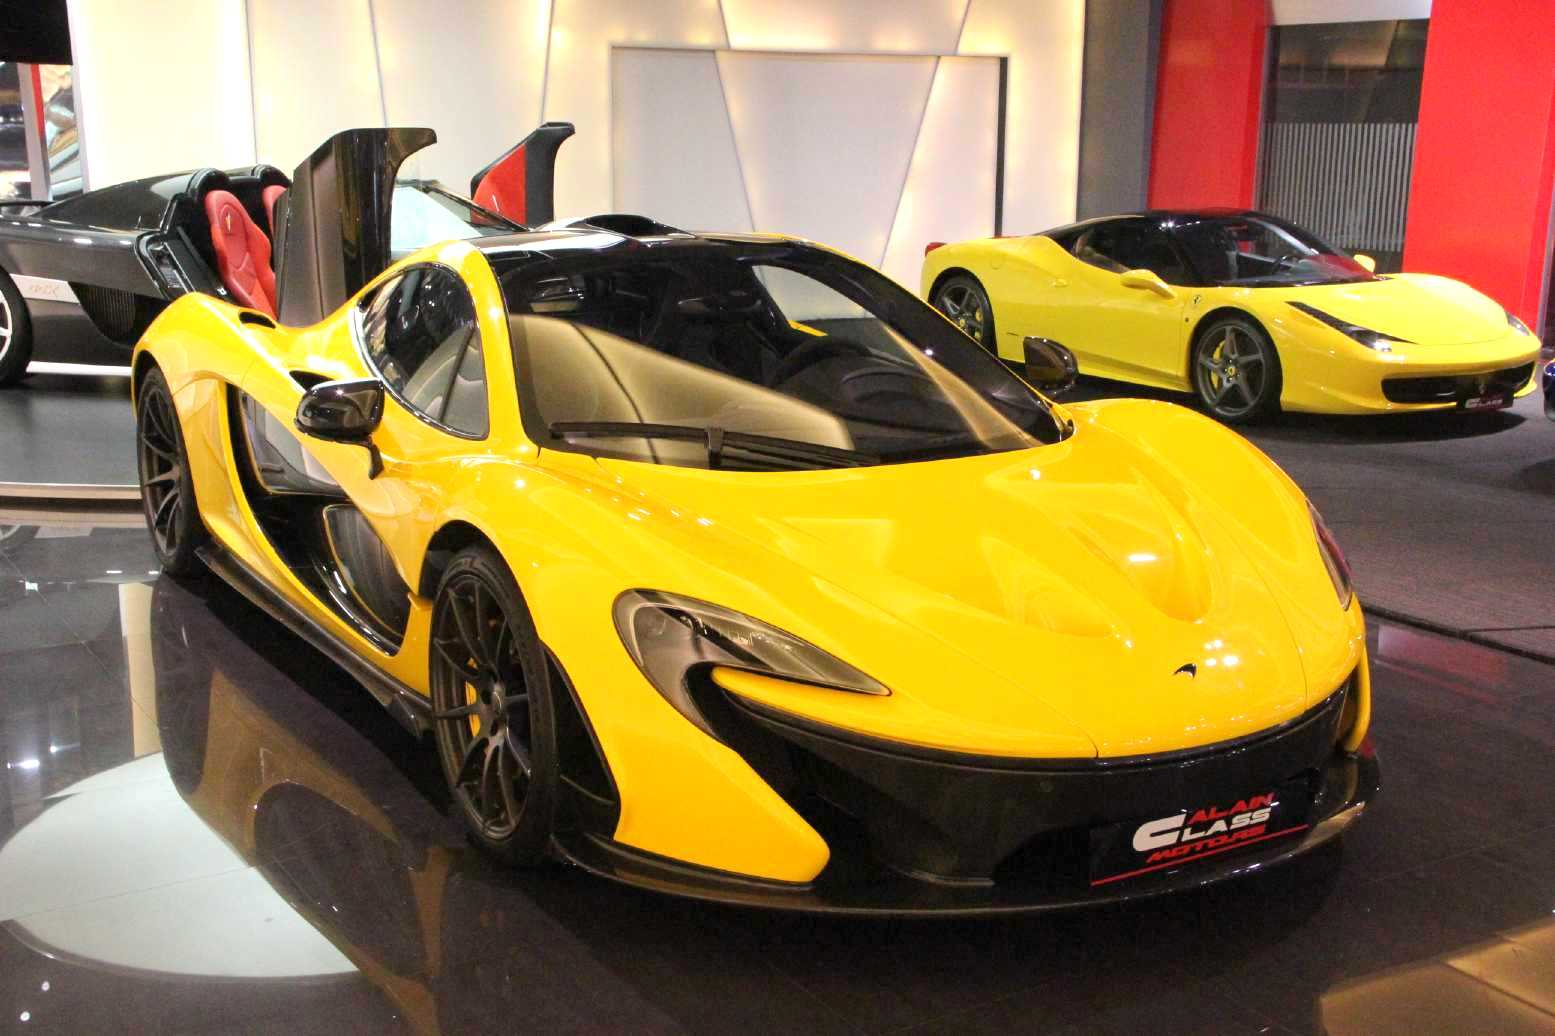 mclaren p1 062 for sale despite official �sold out